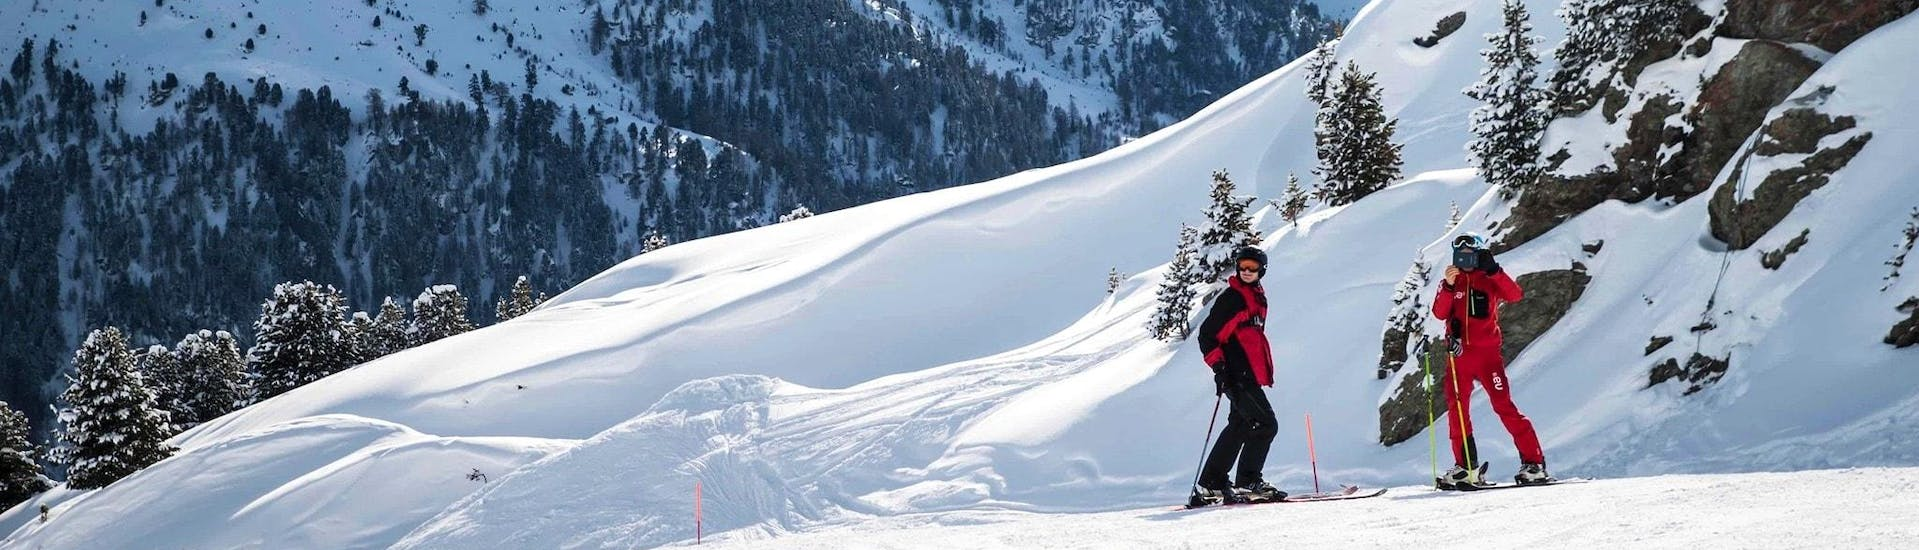 private-ski-lessons-for-adults-neige-aventure-hero